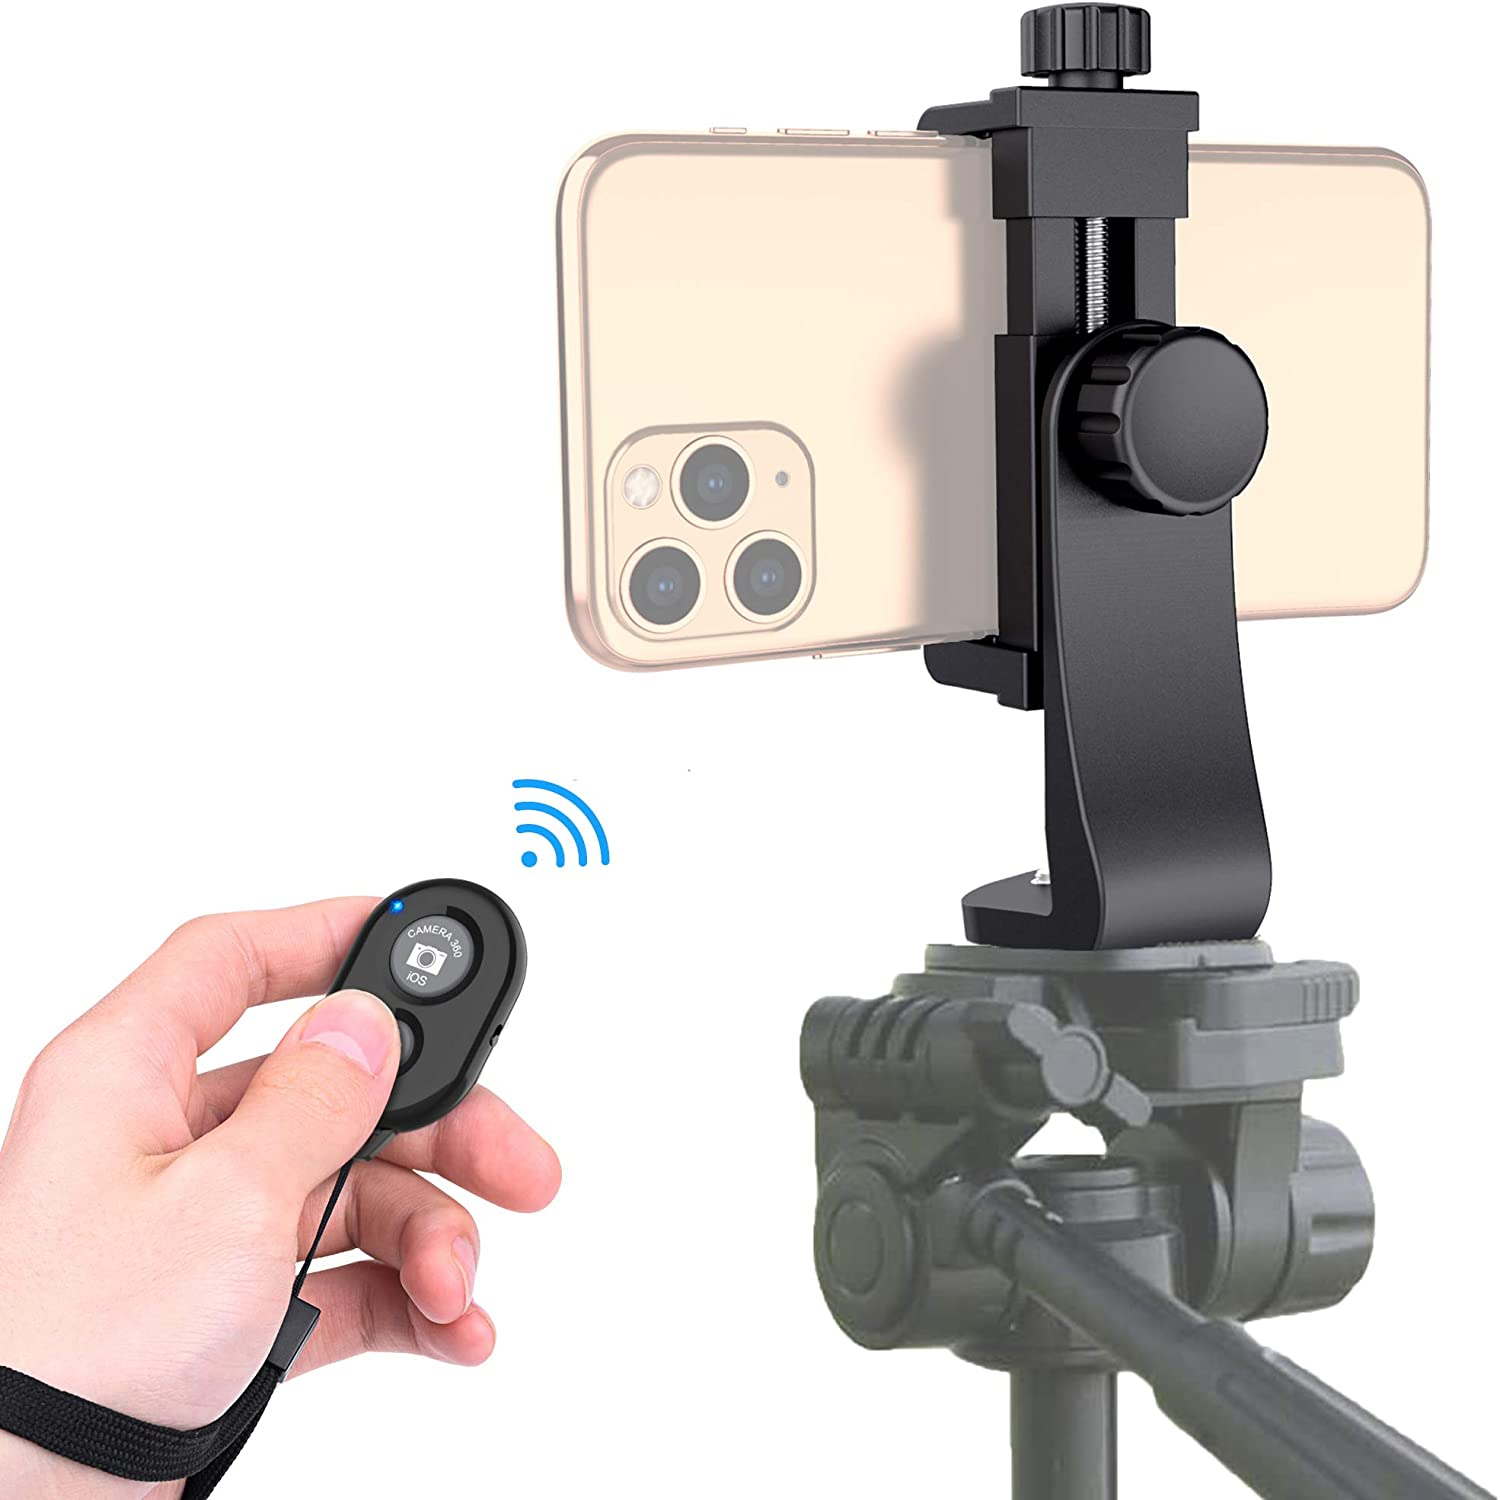 Universal Phone Tripod Mount Adapter with Bluetooth Camera Remote, Cell Phone Holder with Adjustable Clamp for Selfie Stick Monopod Compatible with iPhone, Samsung and so on, Wrist Strap Included: Camera & Photo